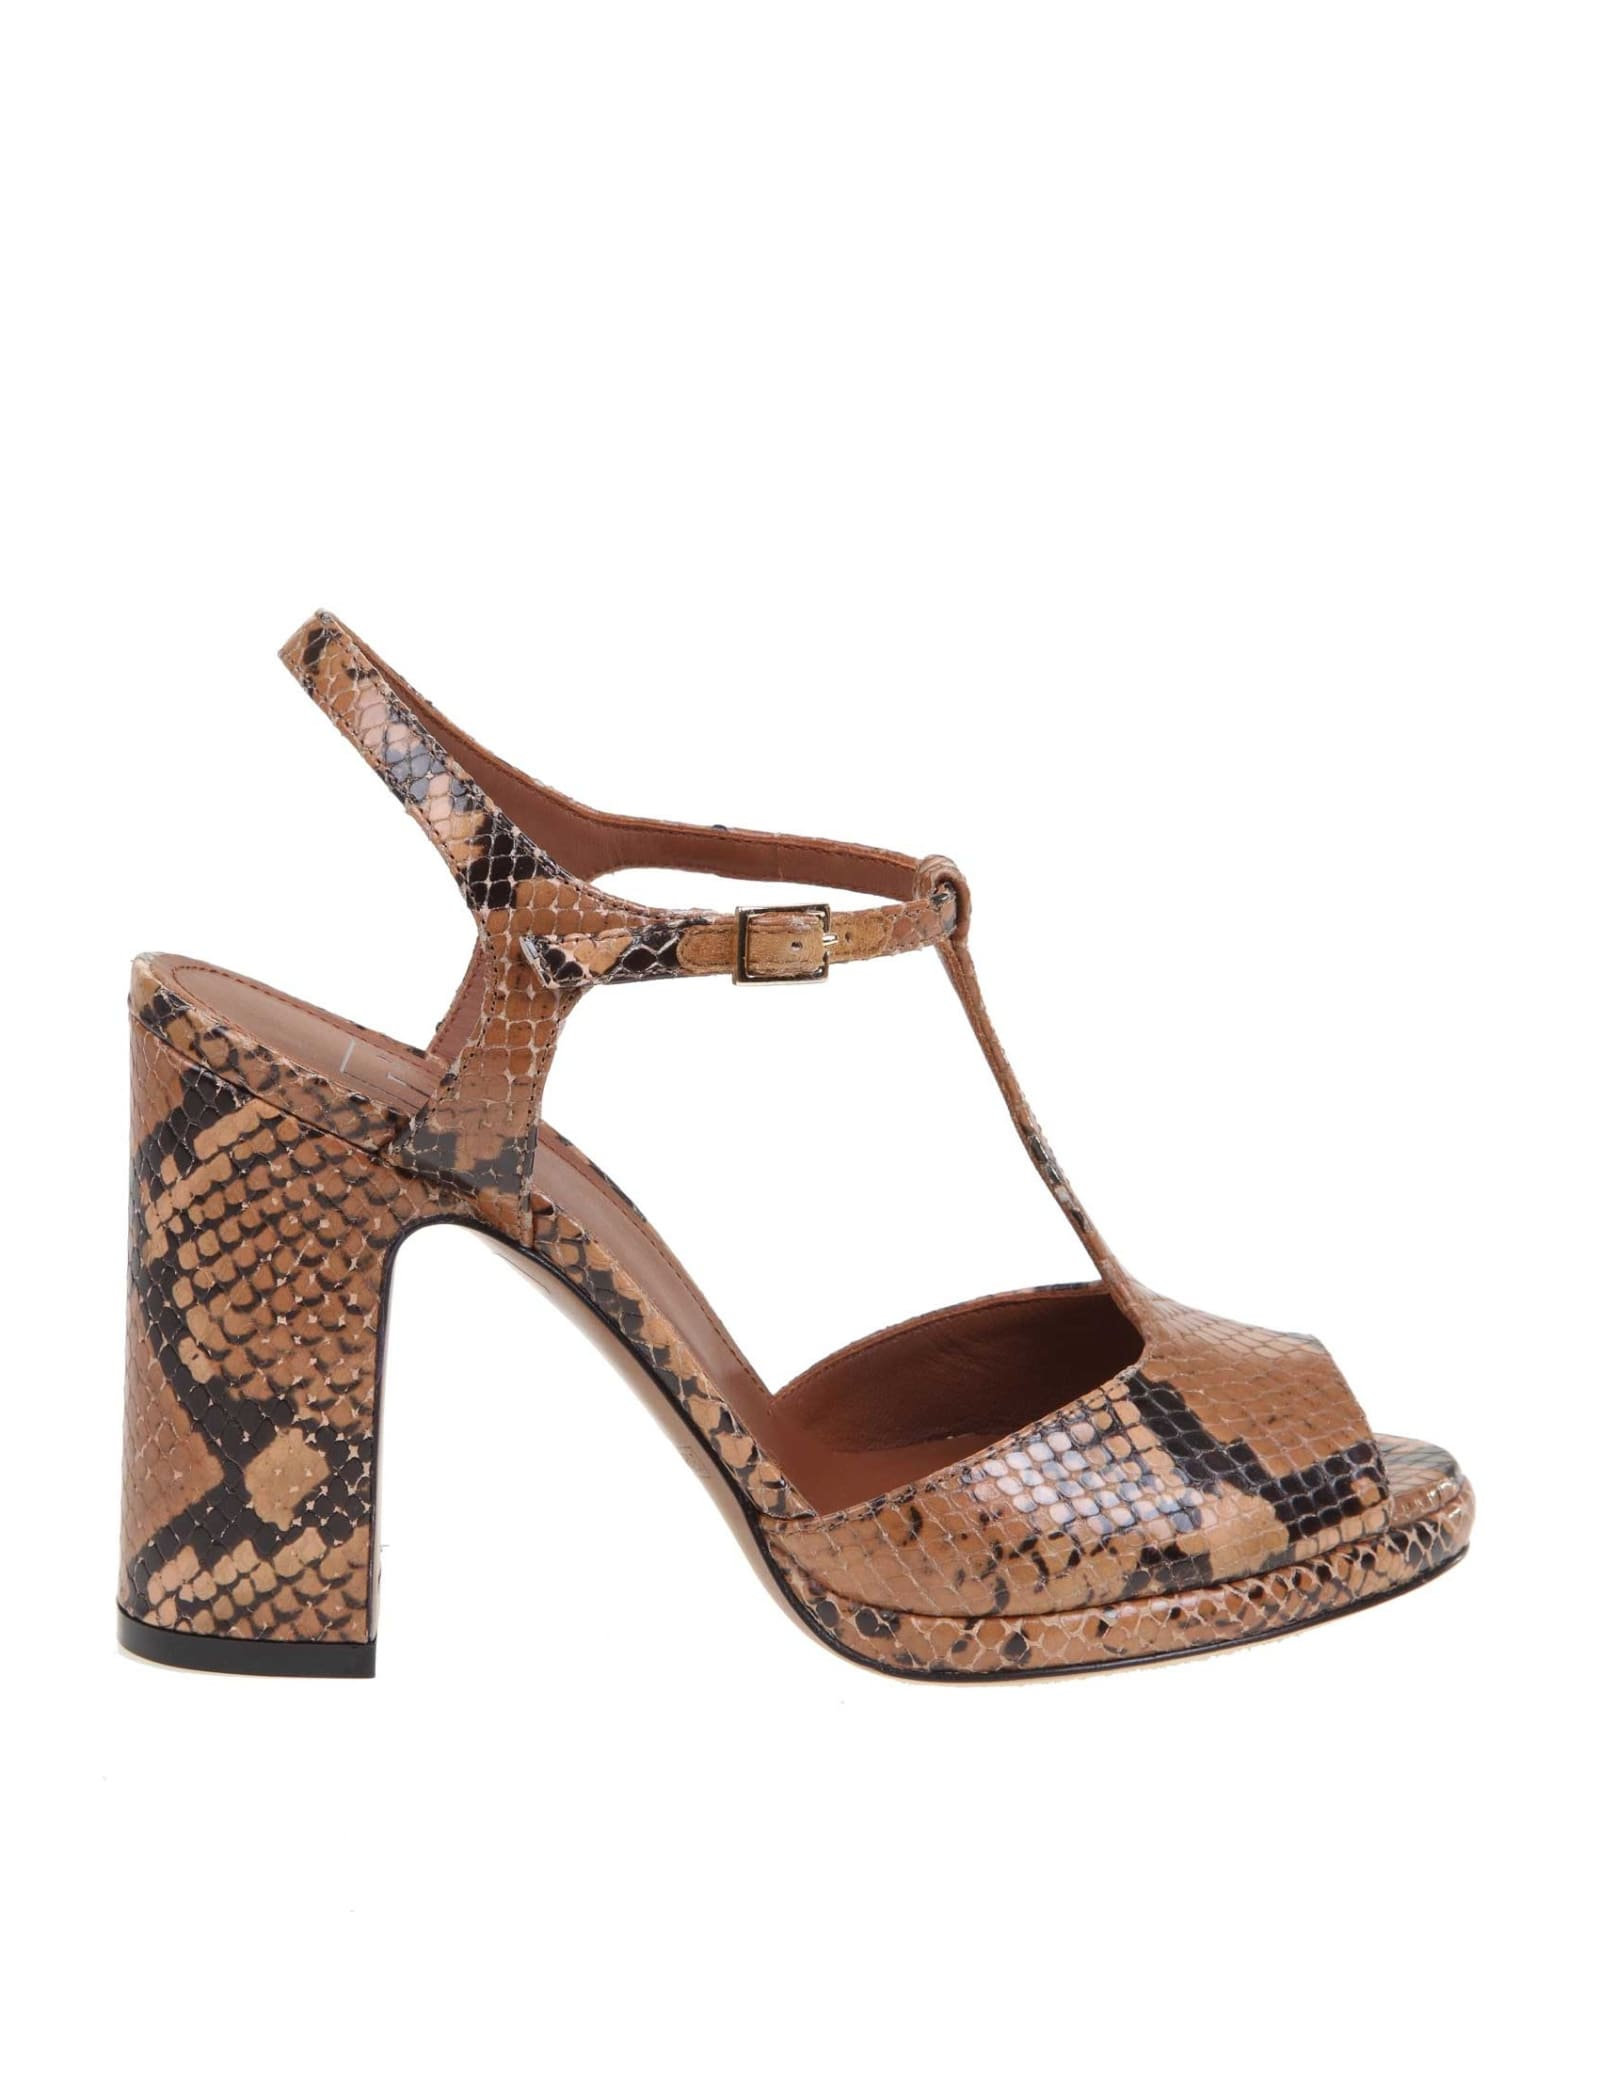 Lautre Chose Pythoned Leather Sandal